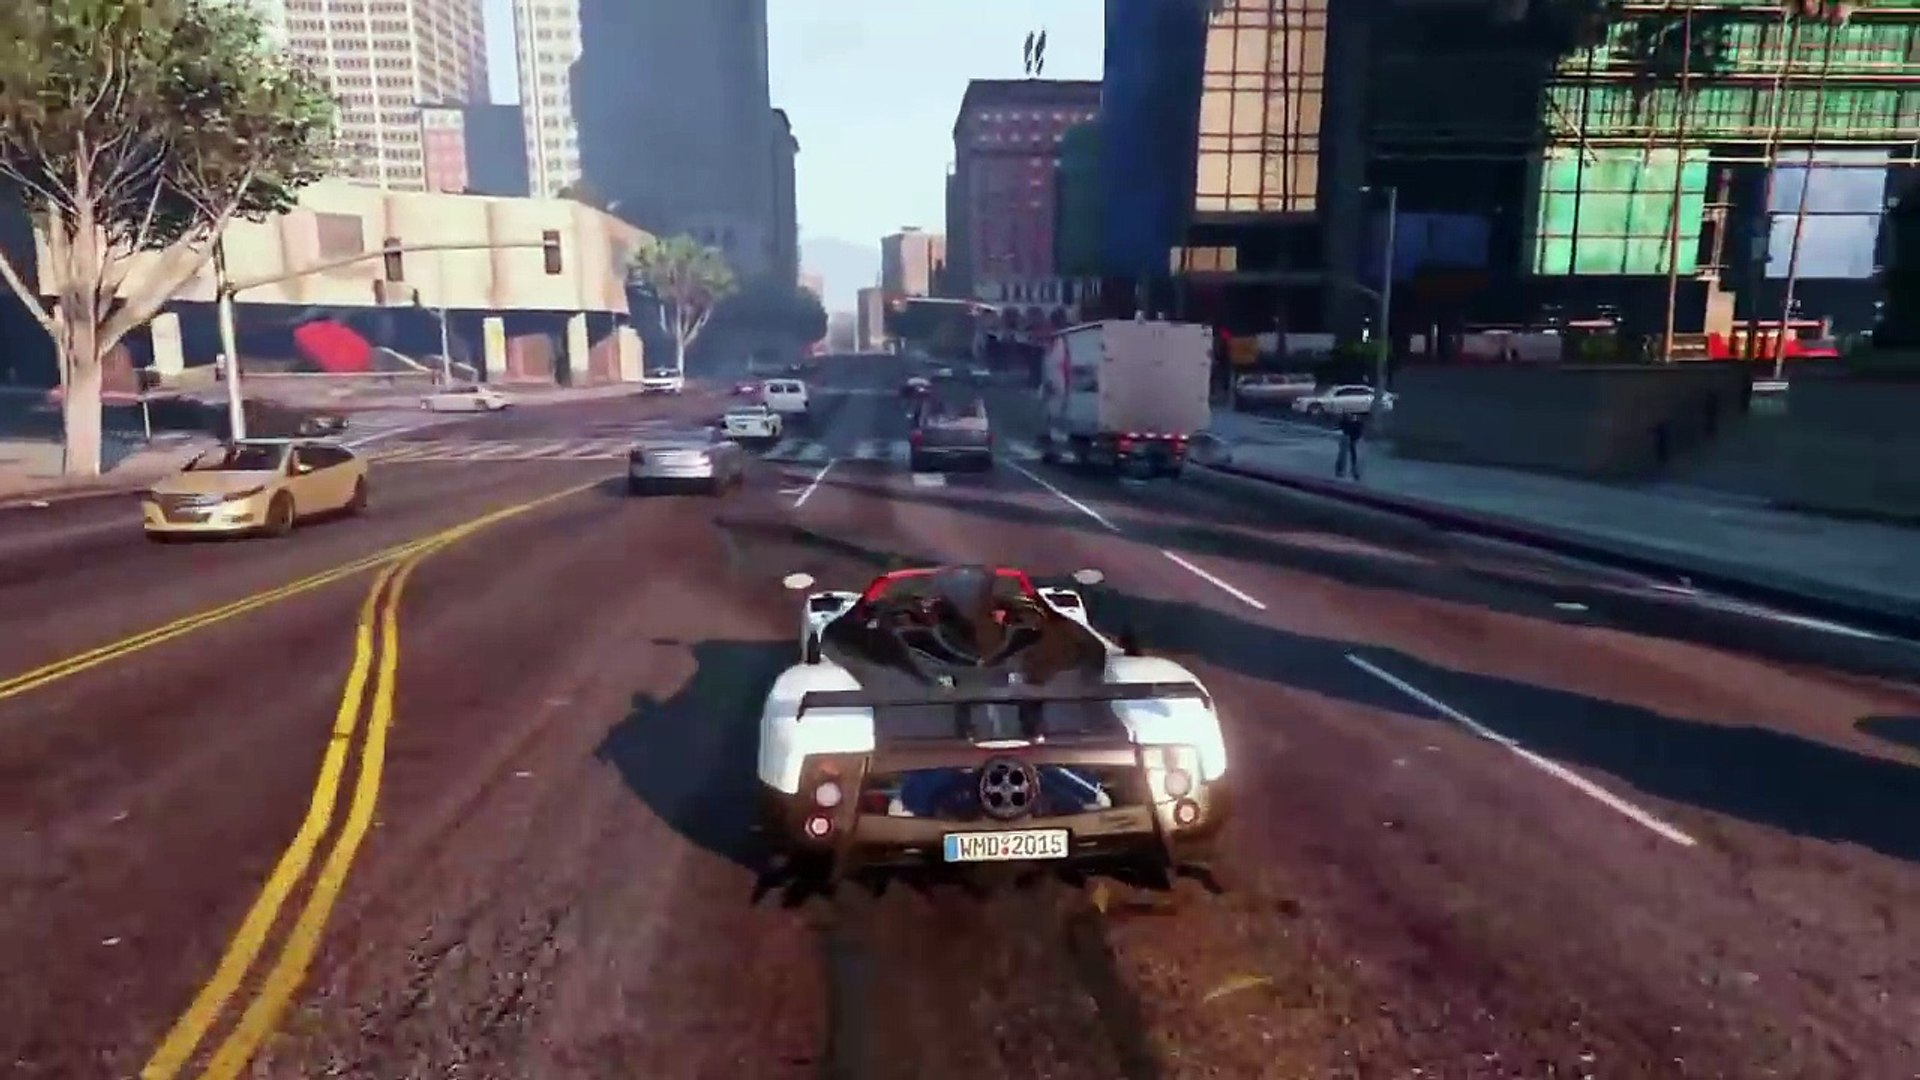 GTA 5 PC GRAPHICS : What to expect! (New Screenshots and